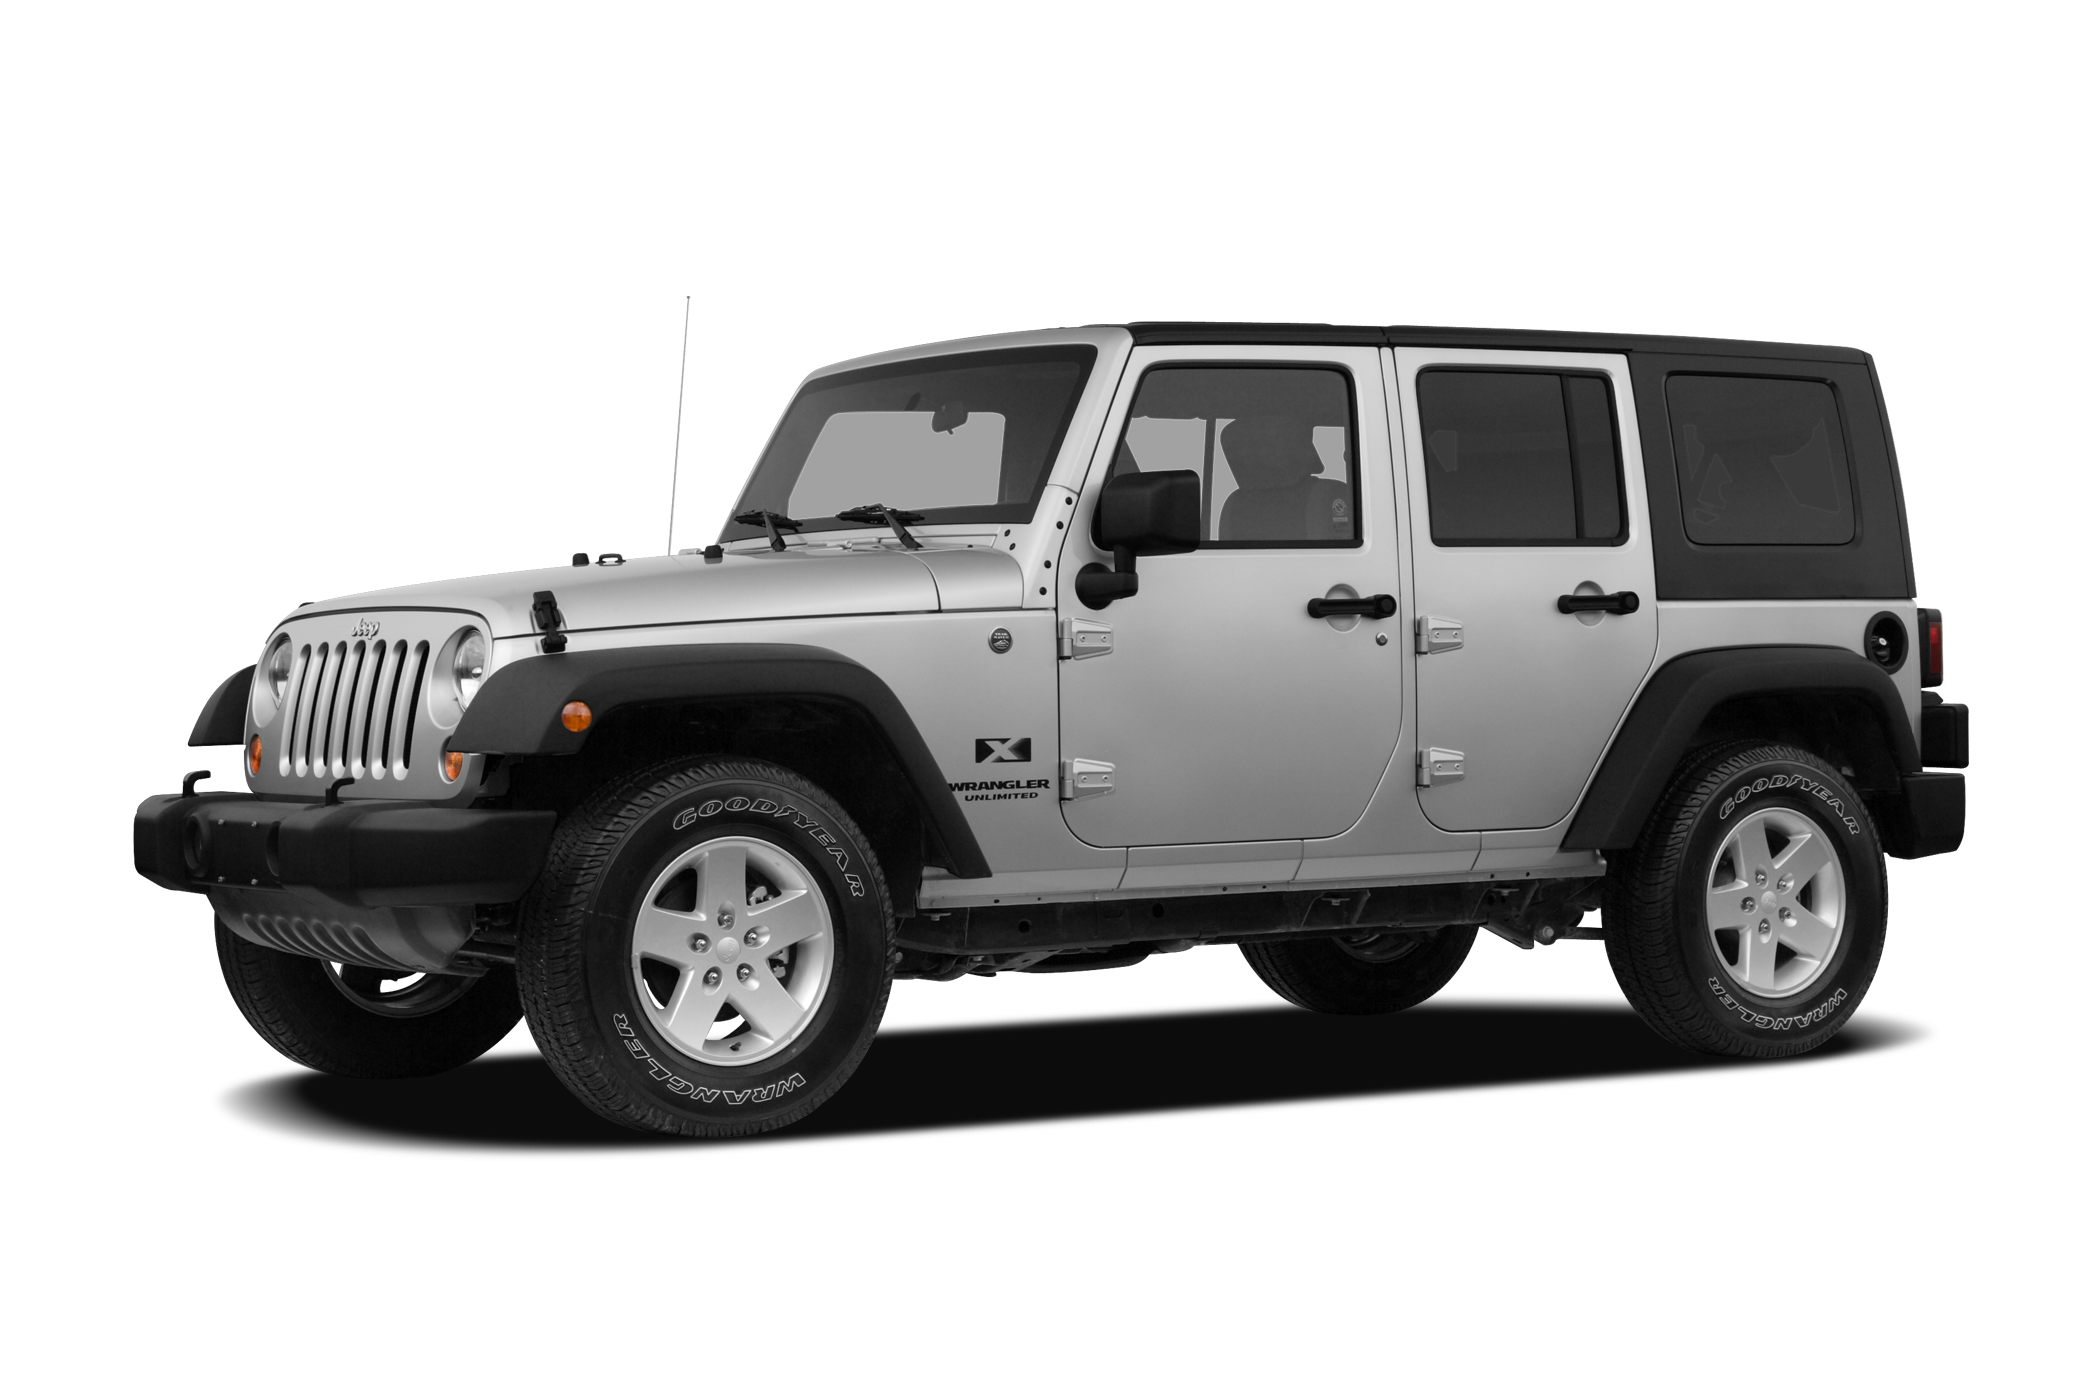 2007 Jeep Wrangler Unlimited Sahara SUV for sale in Kansas City for $20,149 with 94,829 miles.